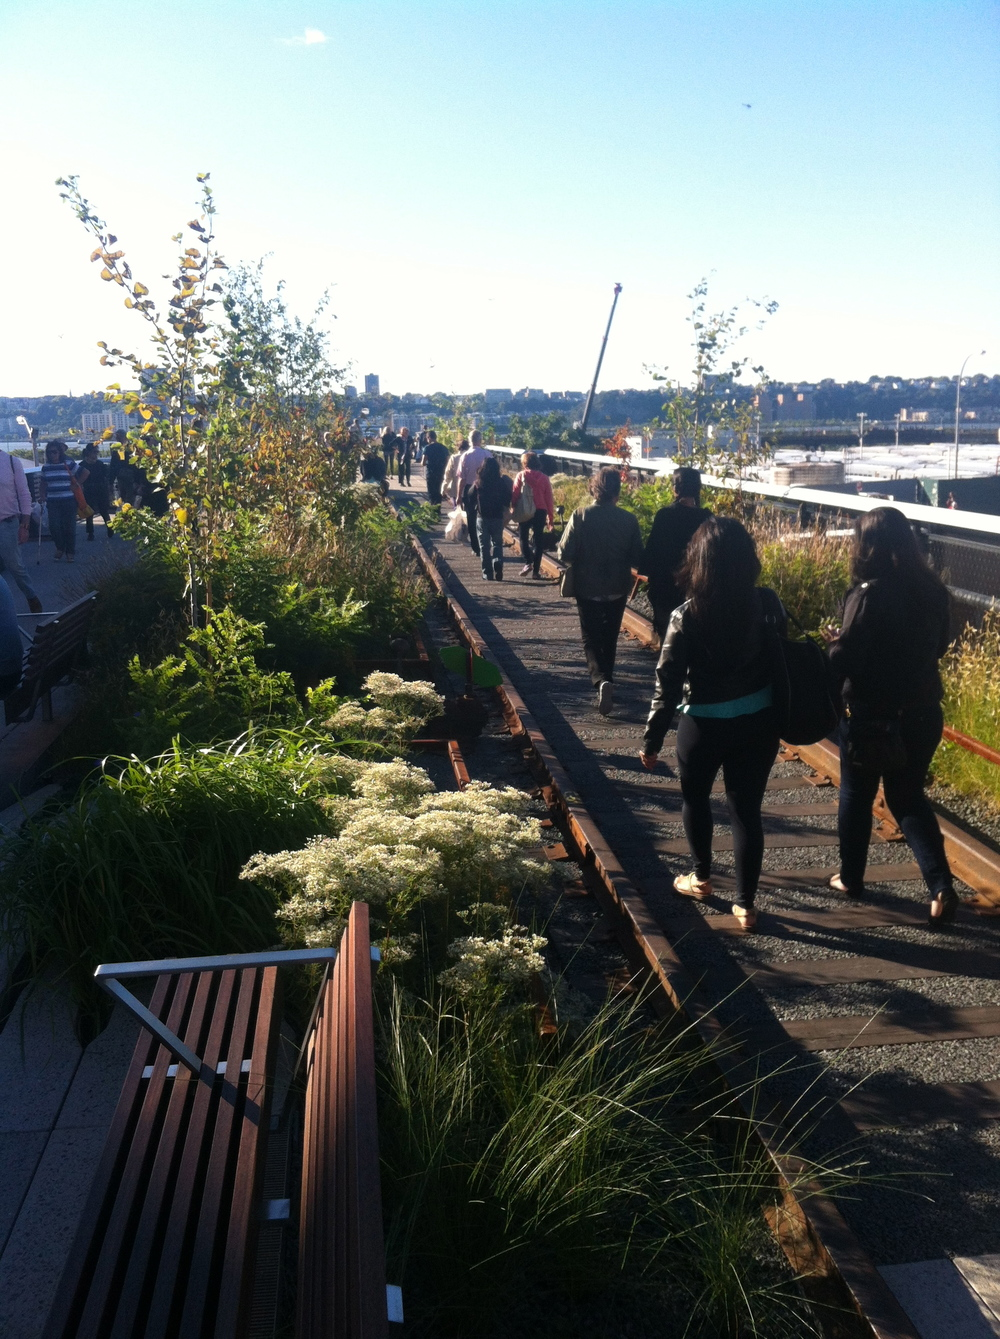 The new portion of the High Line features a minimal and sparse landscape and original railroad tracks where visitors can walk.